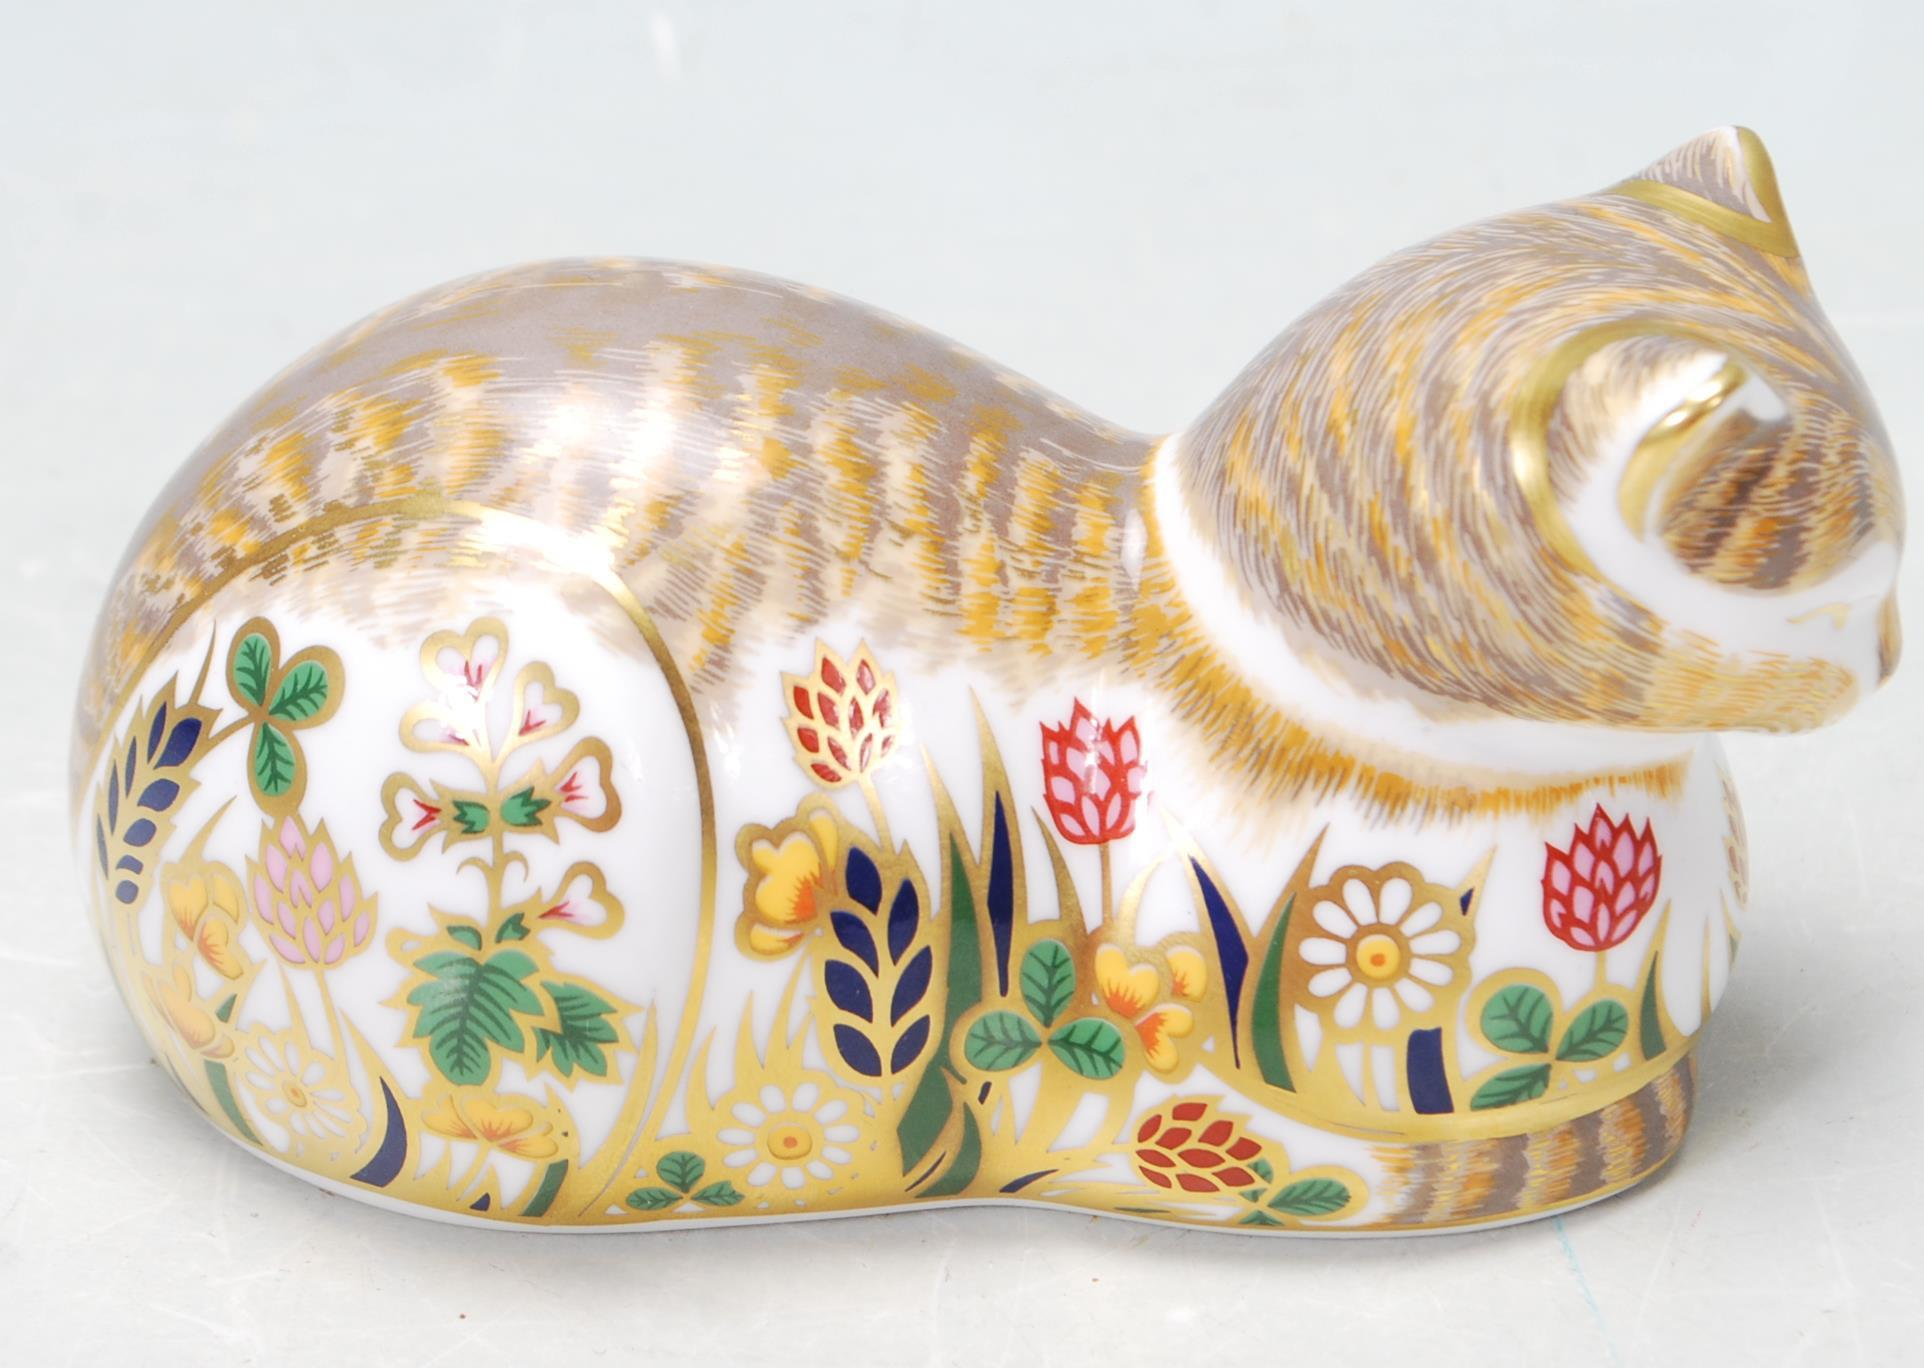 ROYAL CROWN DERBY COTTAGE CAT PAPERWEIGHT WITH GOLD STOPPER - Image 2 of 5